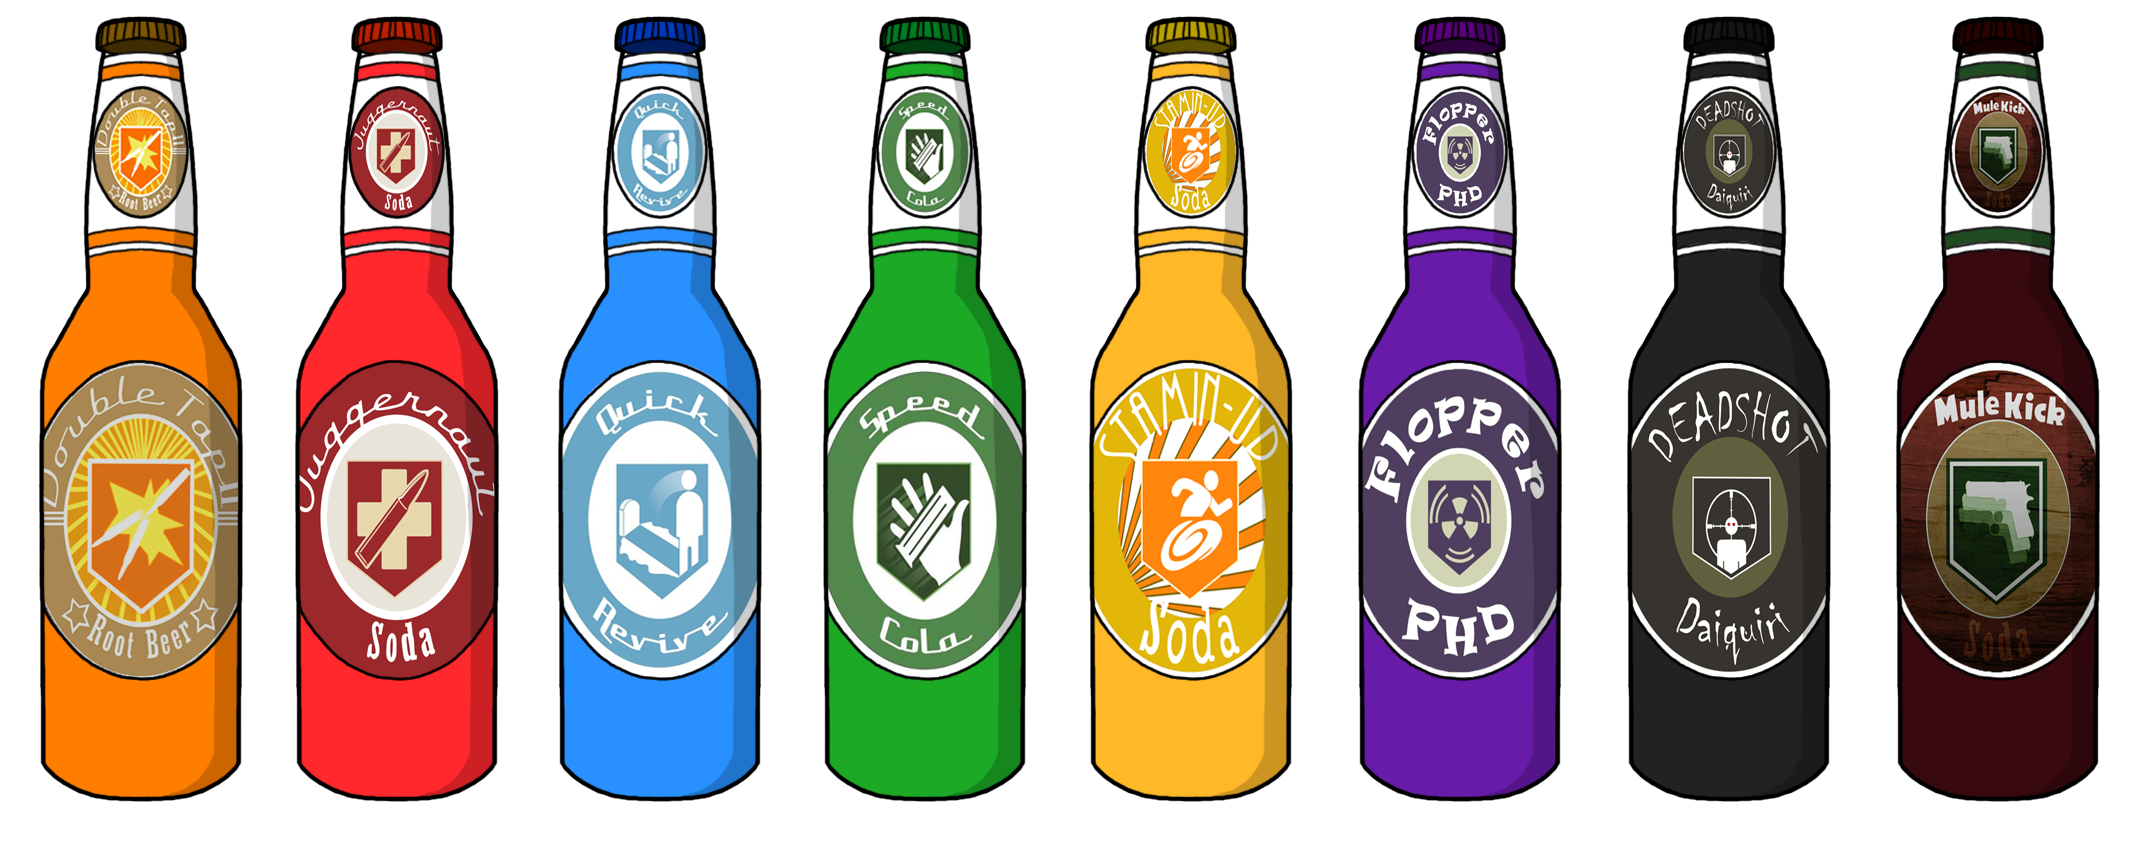 Zombies perks png. Perk a colas by